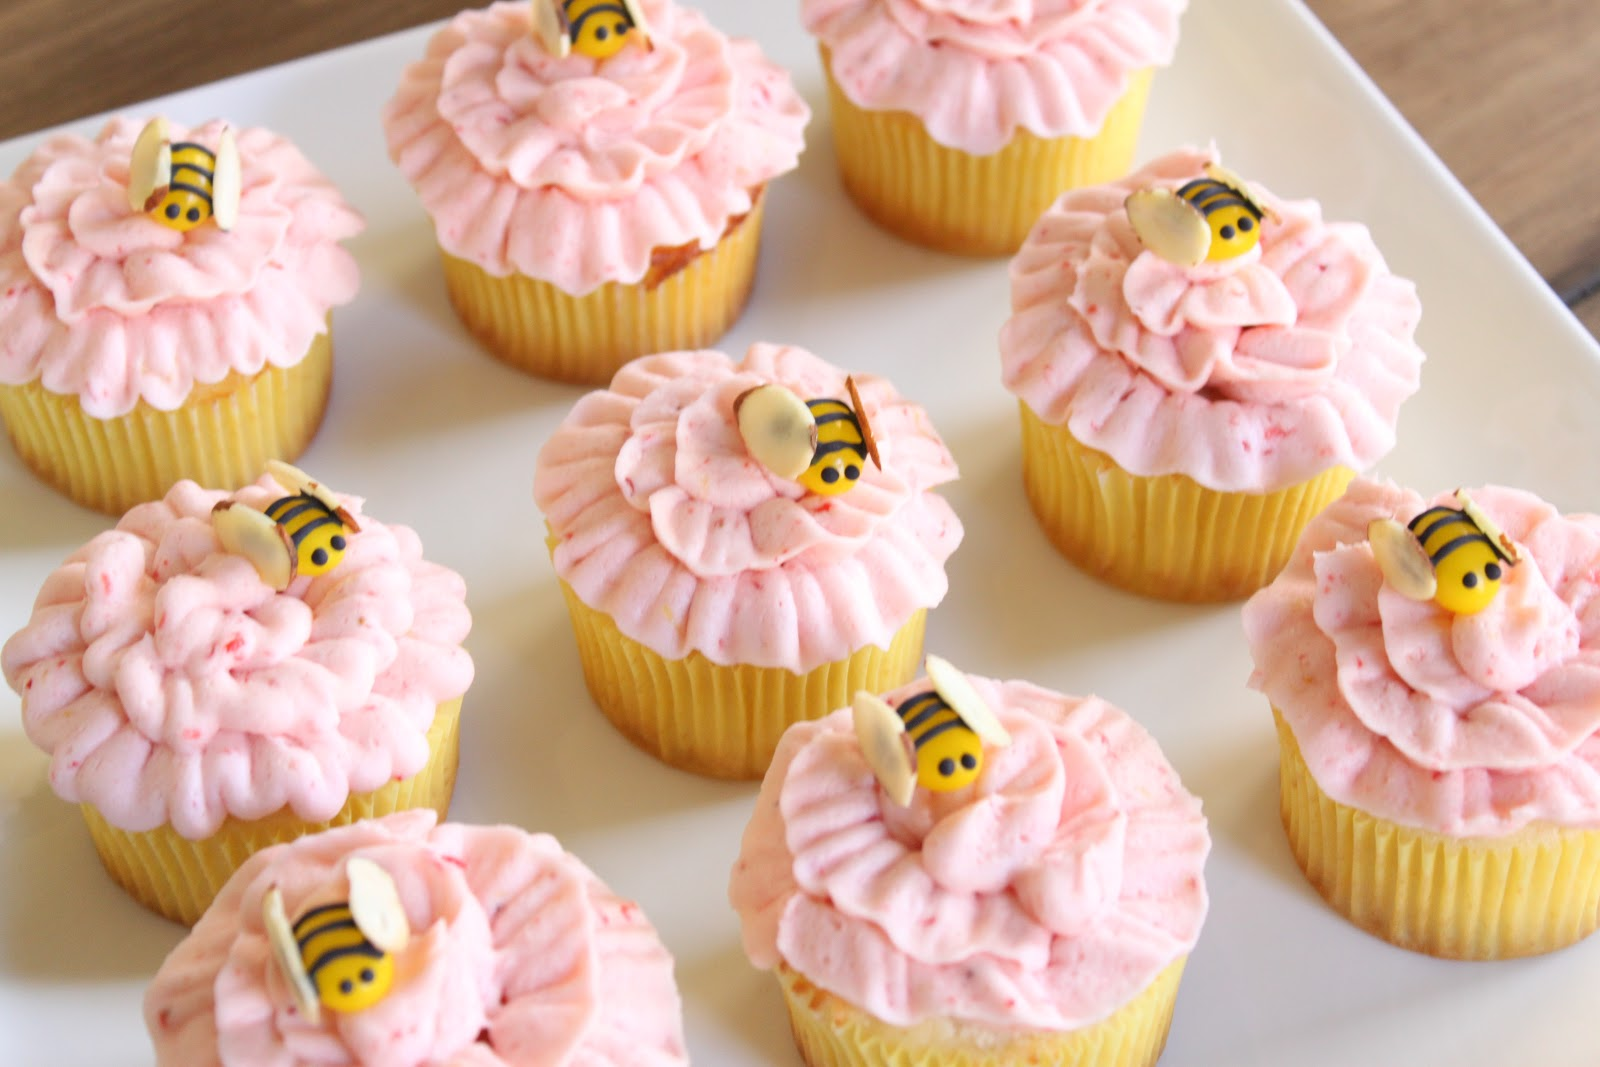 Crave Indulge Satisfy Spring Flower & Bumble Bee Cupcakes